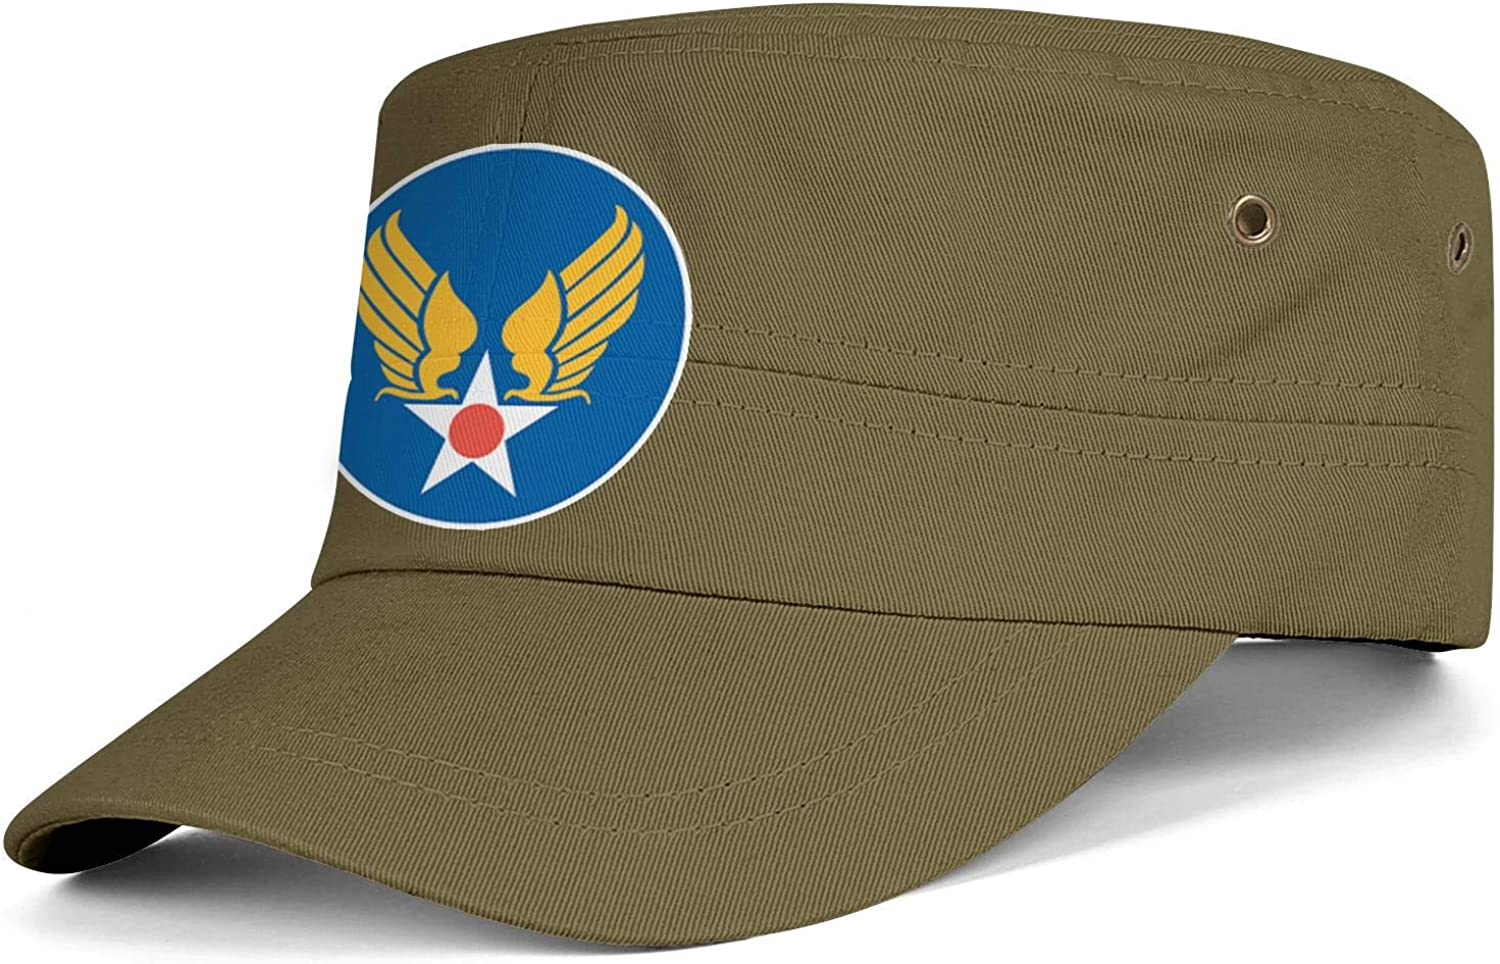 USAF Hap Arnold Symbol Army Cap Cadet Corps Hat Military Flat Top Adjustable Baseball Cap Cotton